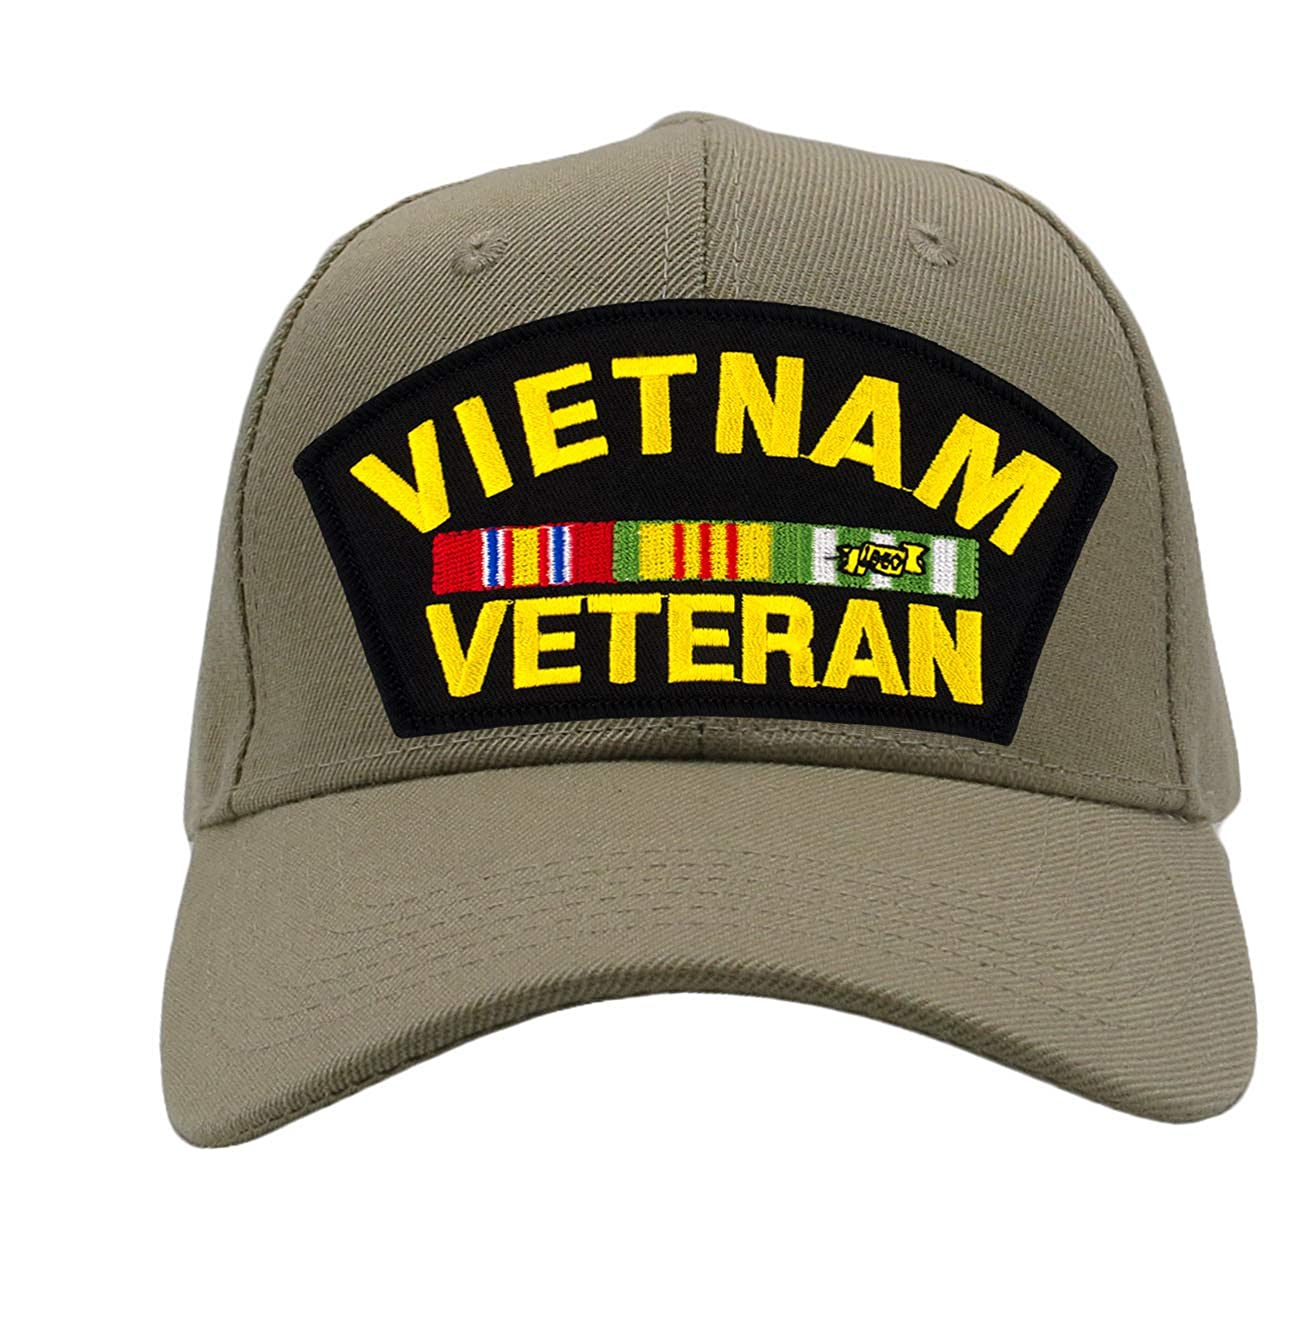 Patchtown Vietnam Veteran Hat//Ballcap Adjustable-BackOne Size Fits Most